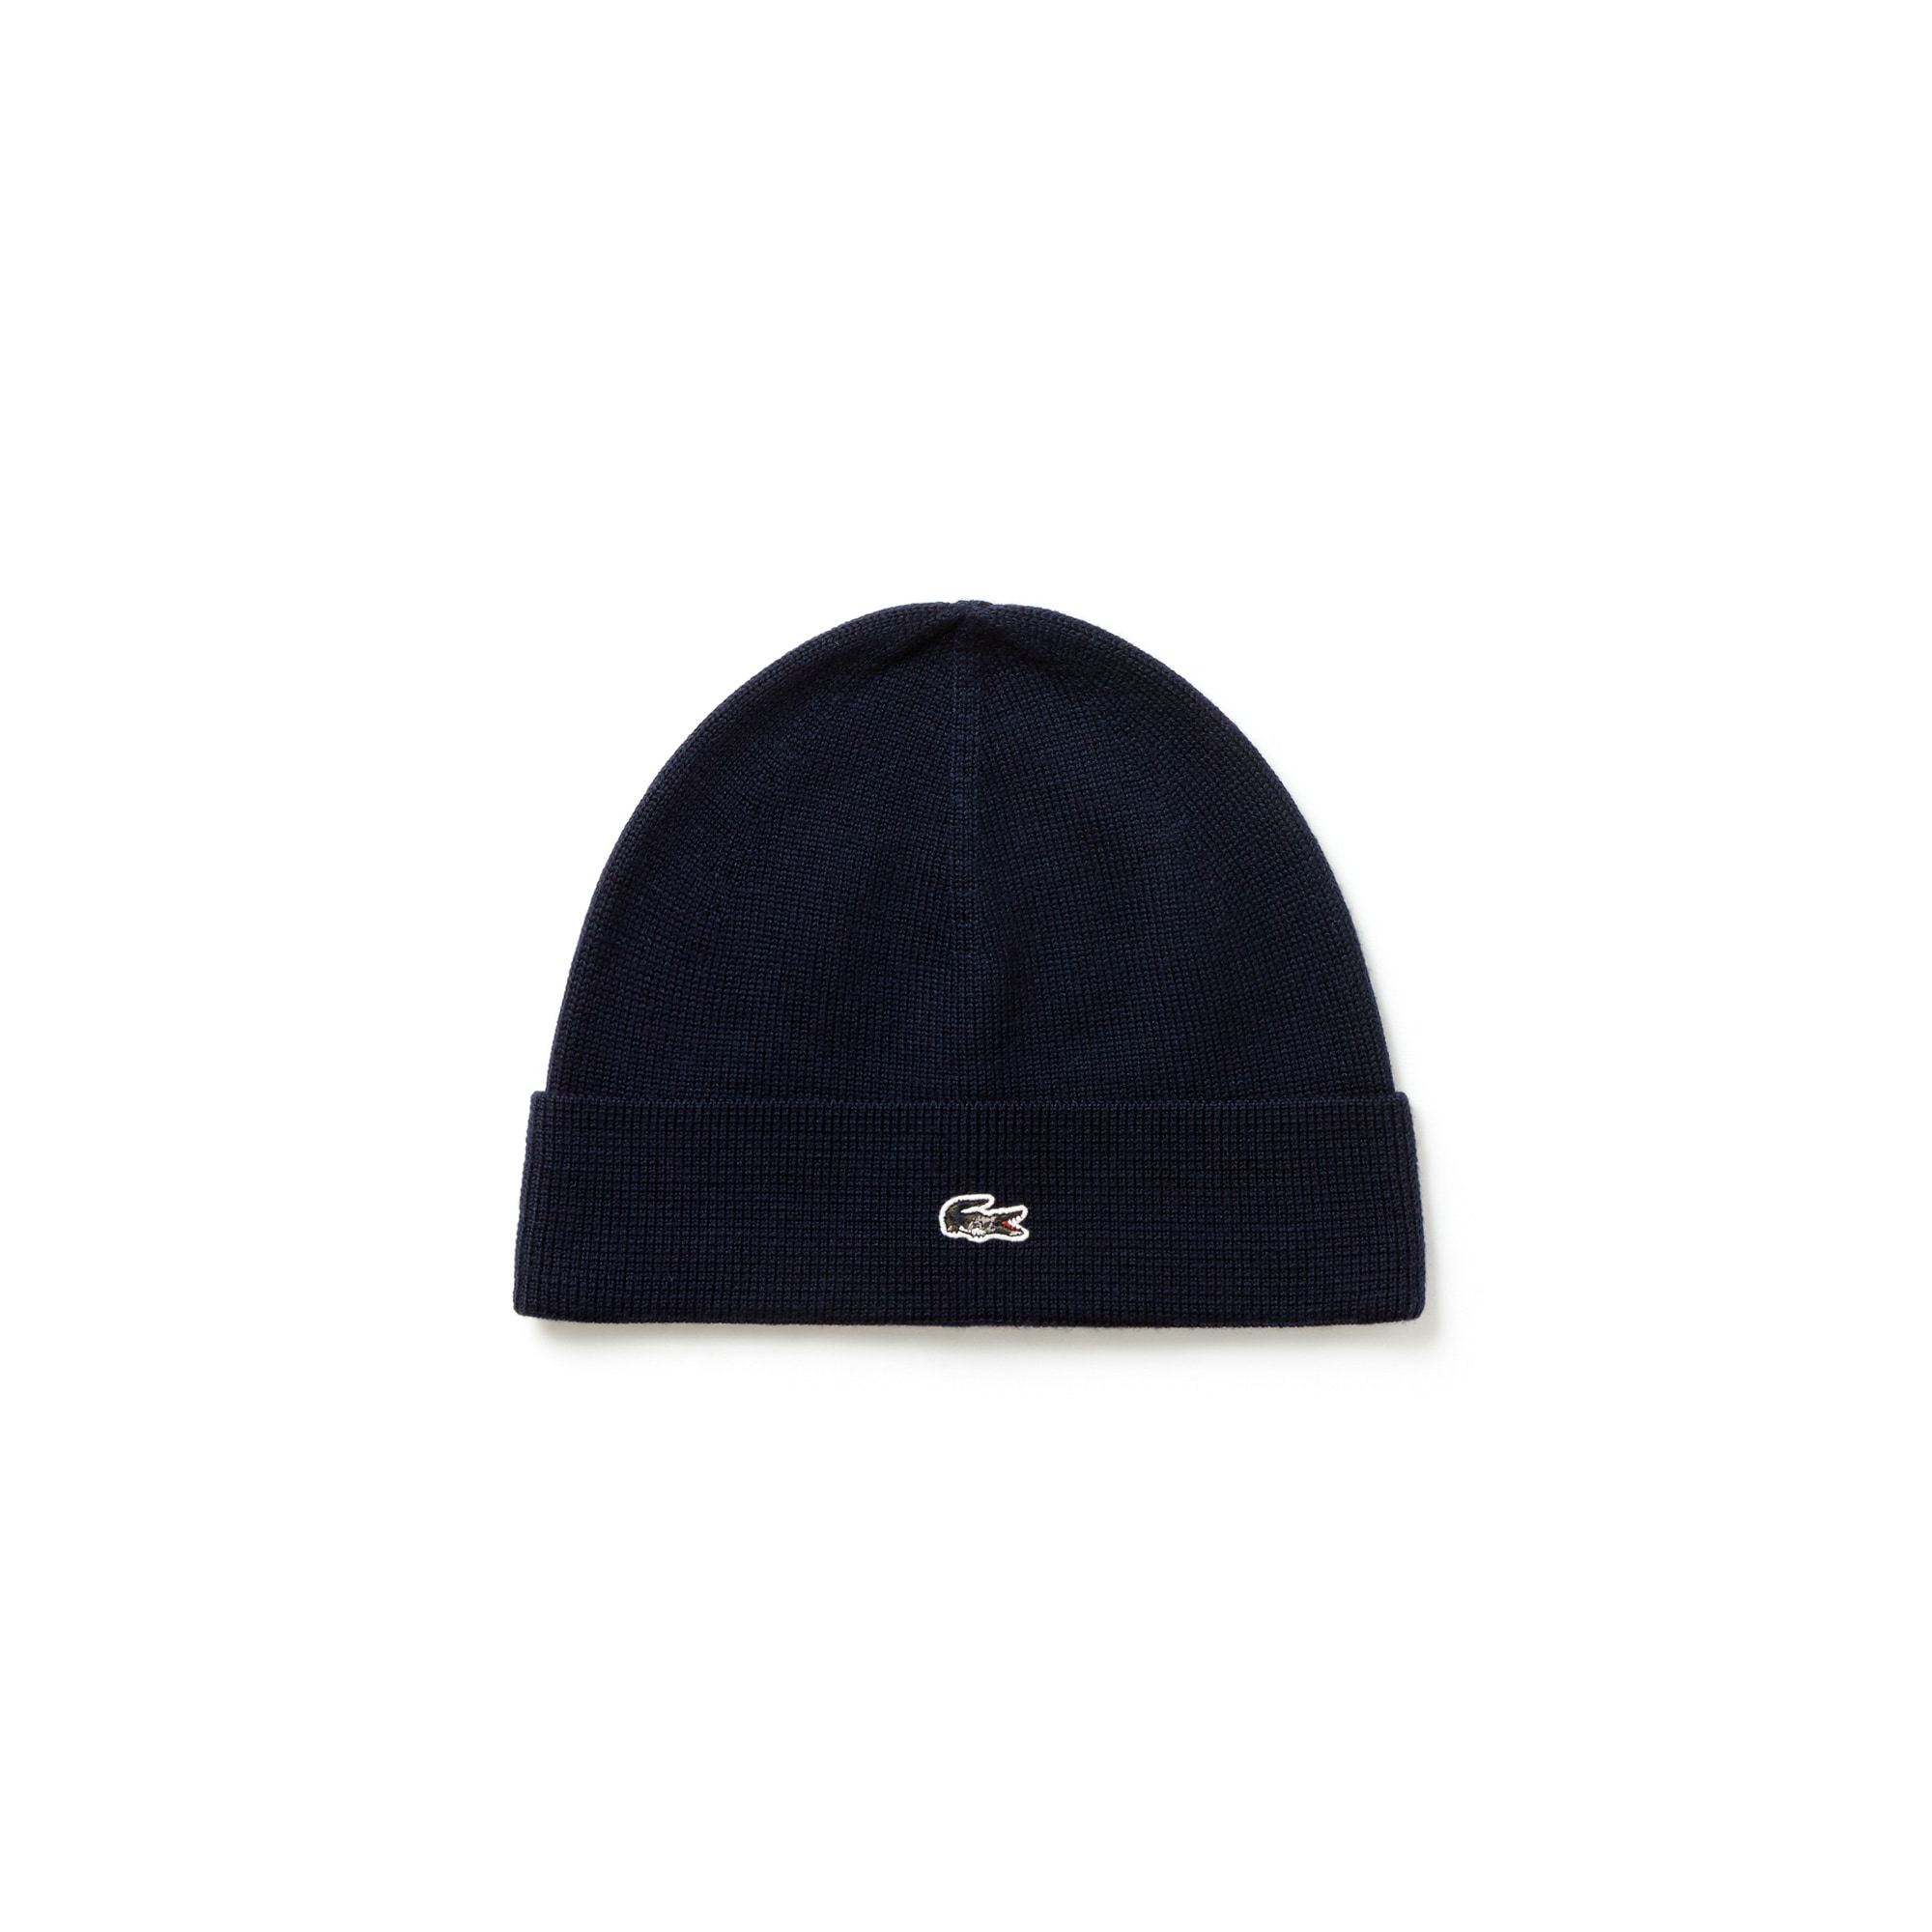 Men's Turned Edge Wool Jersey Beanie